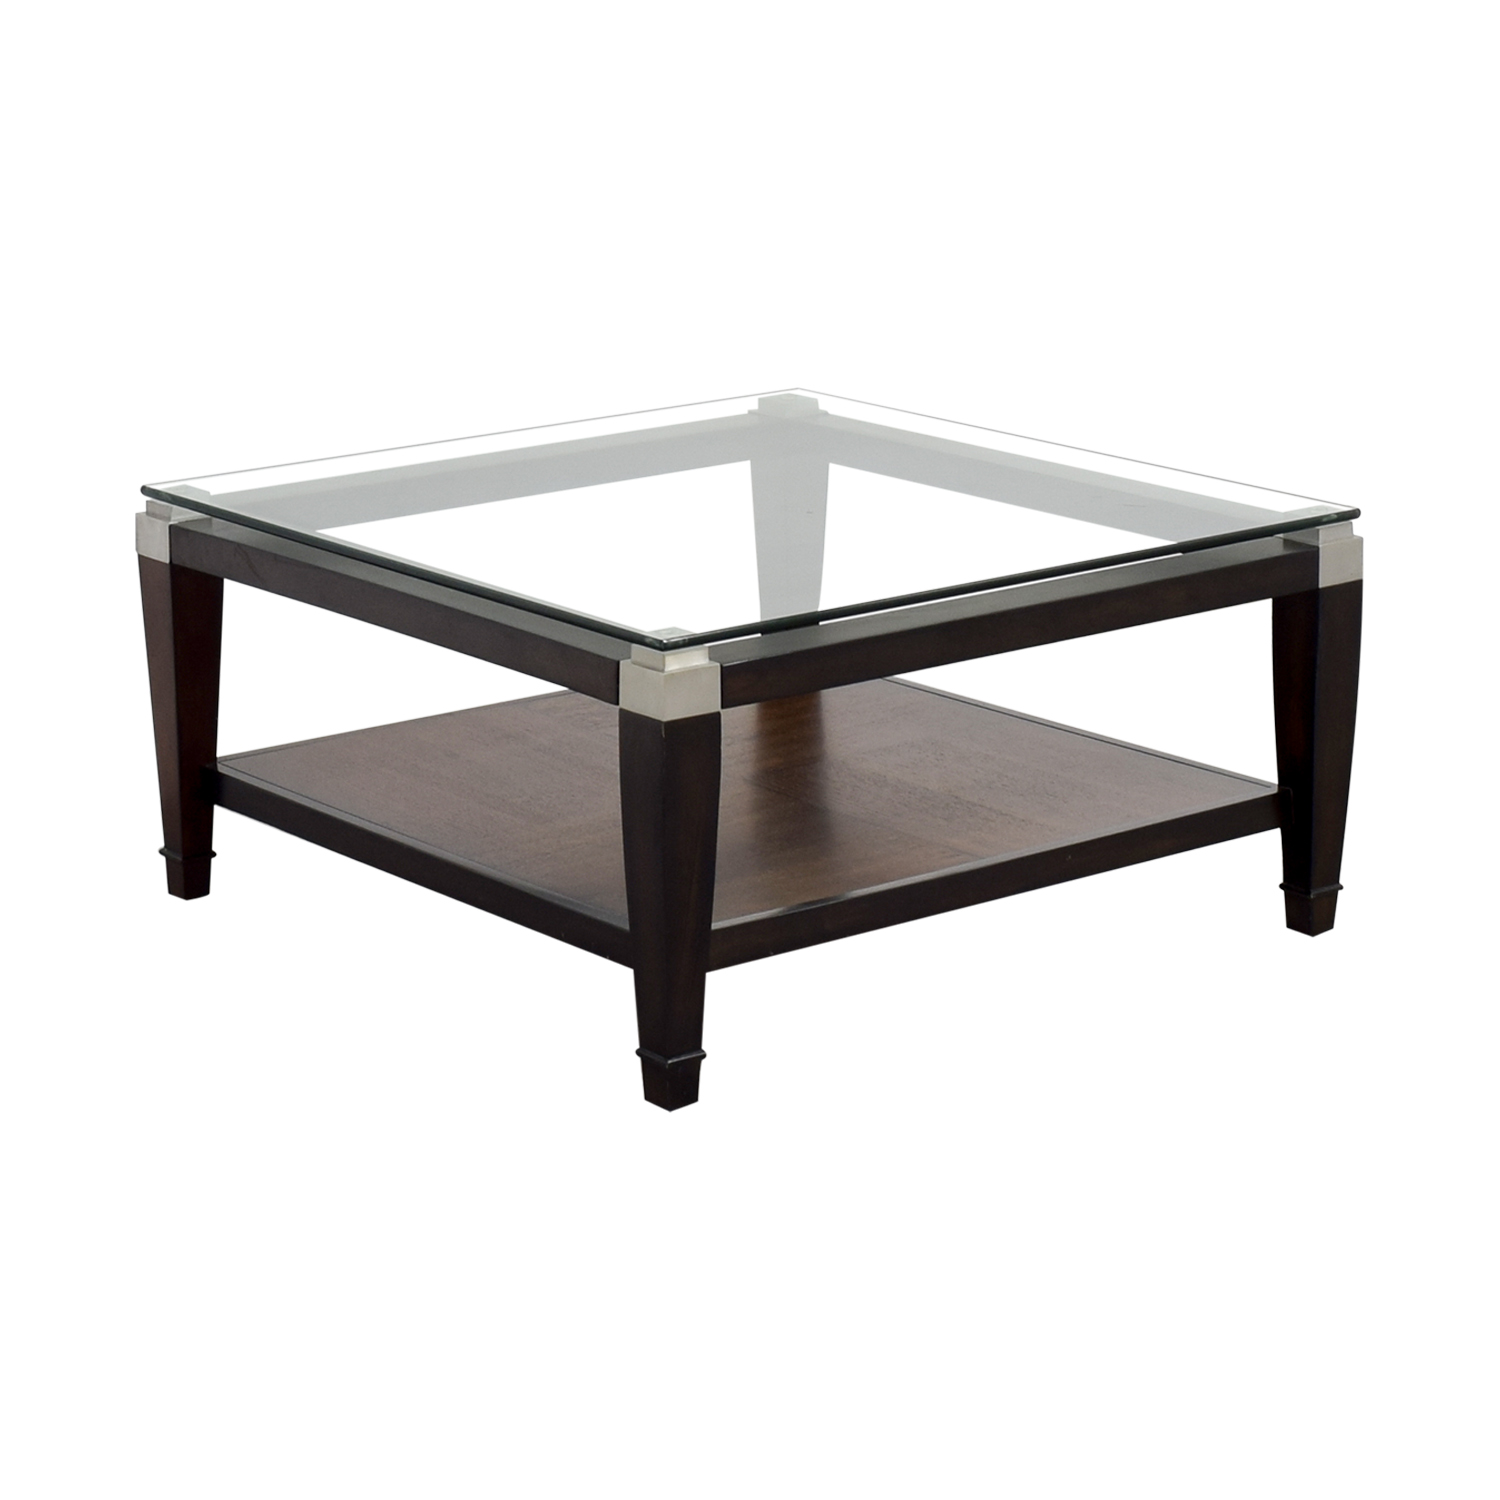 Raymour & Flanigan Wood and Glass Coffee Table / Coffee Tables